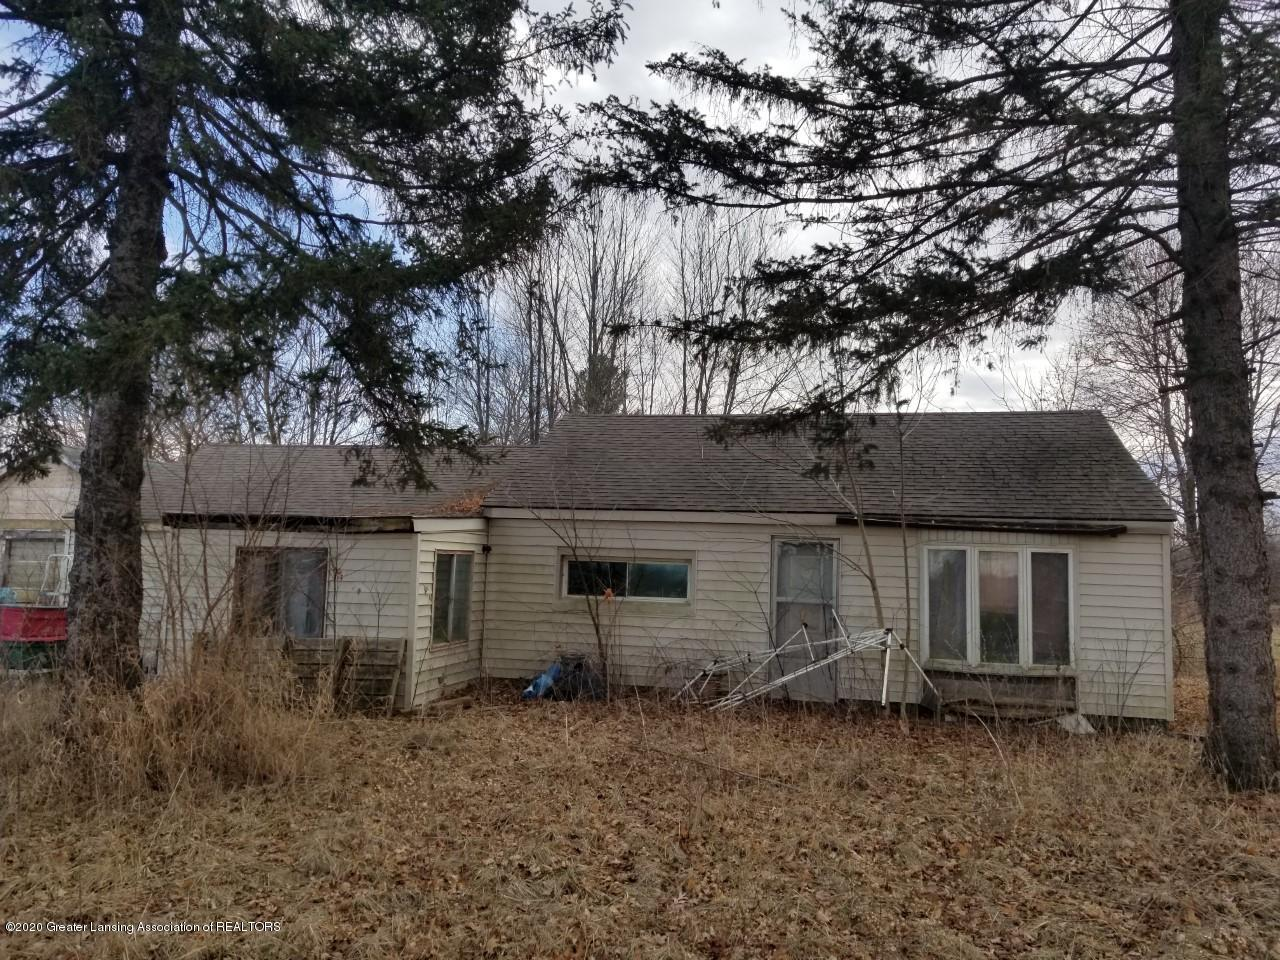 2925 S Canfield Rd - 2925 S Canfield Rd - 1